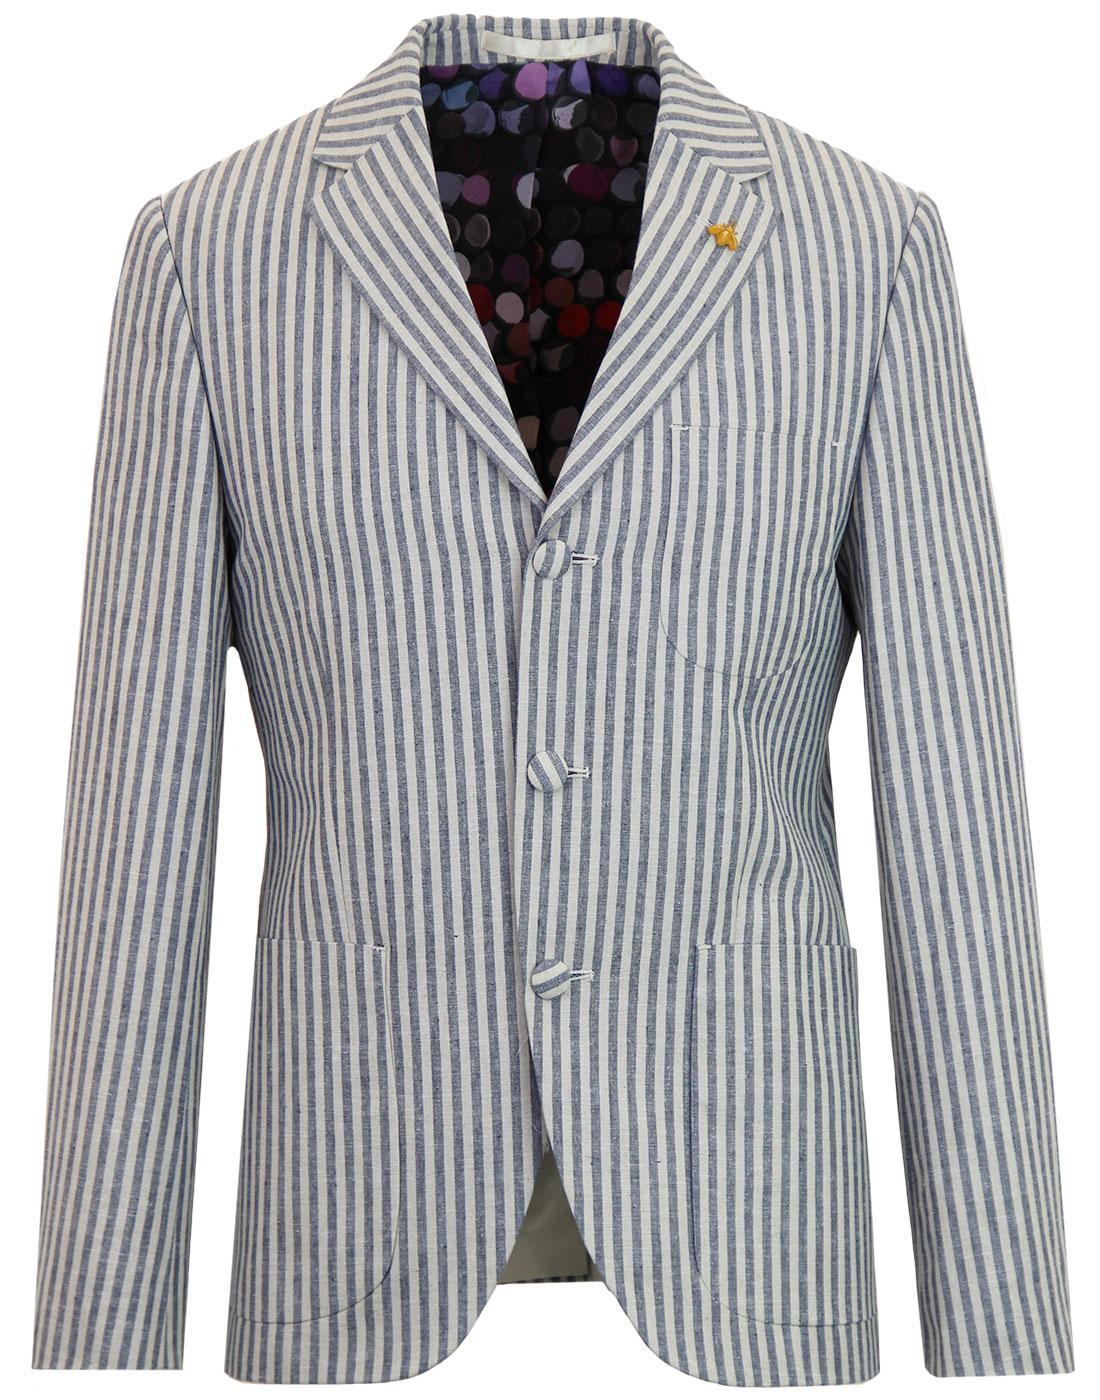 Moorgate GIBSON LONDON Mod 3 Button Boating Blazer